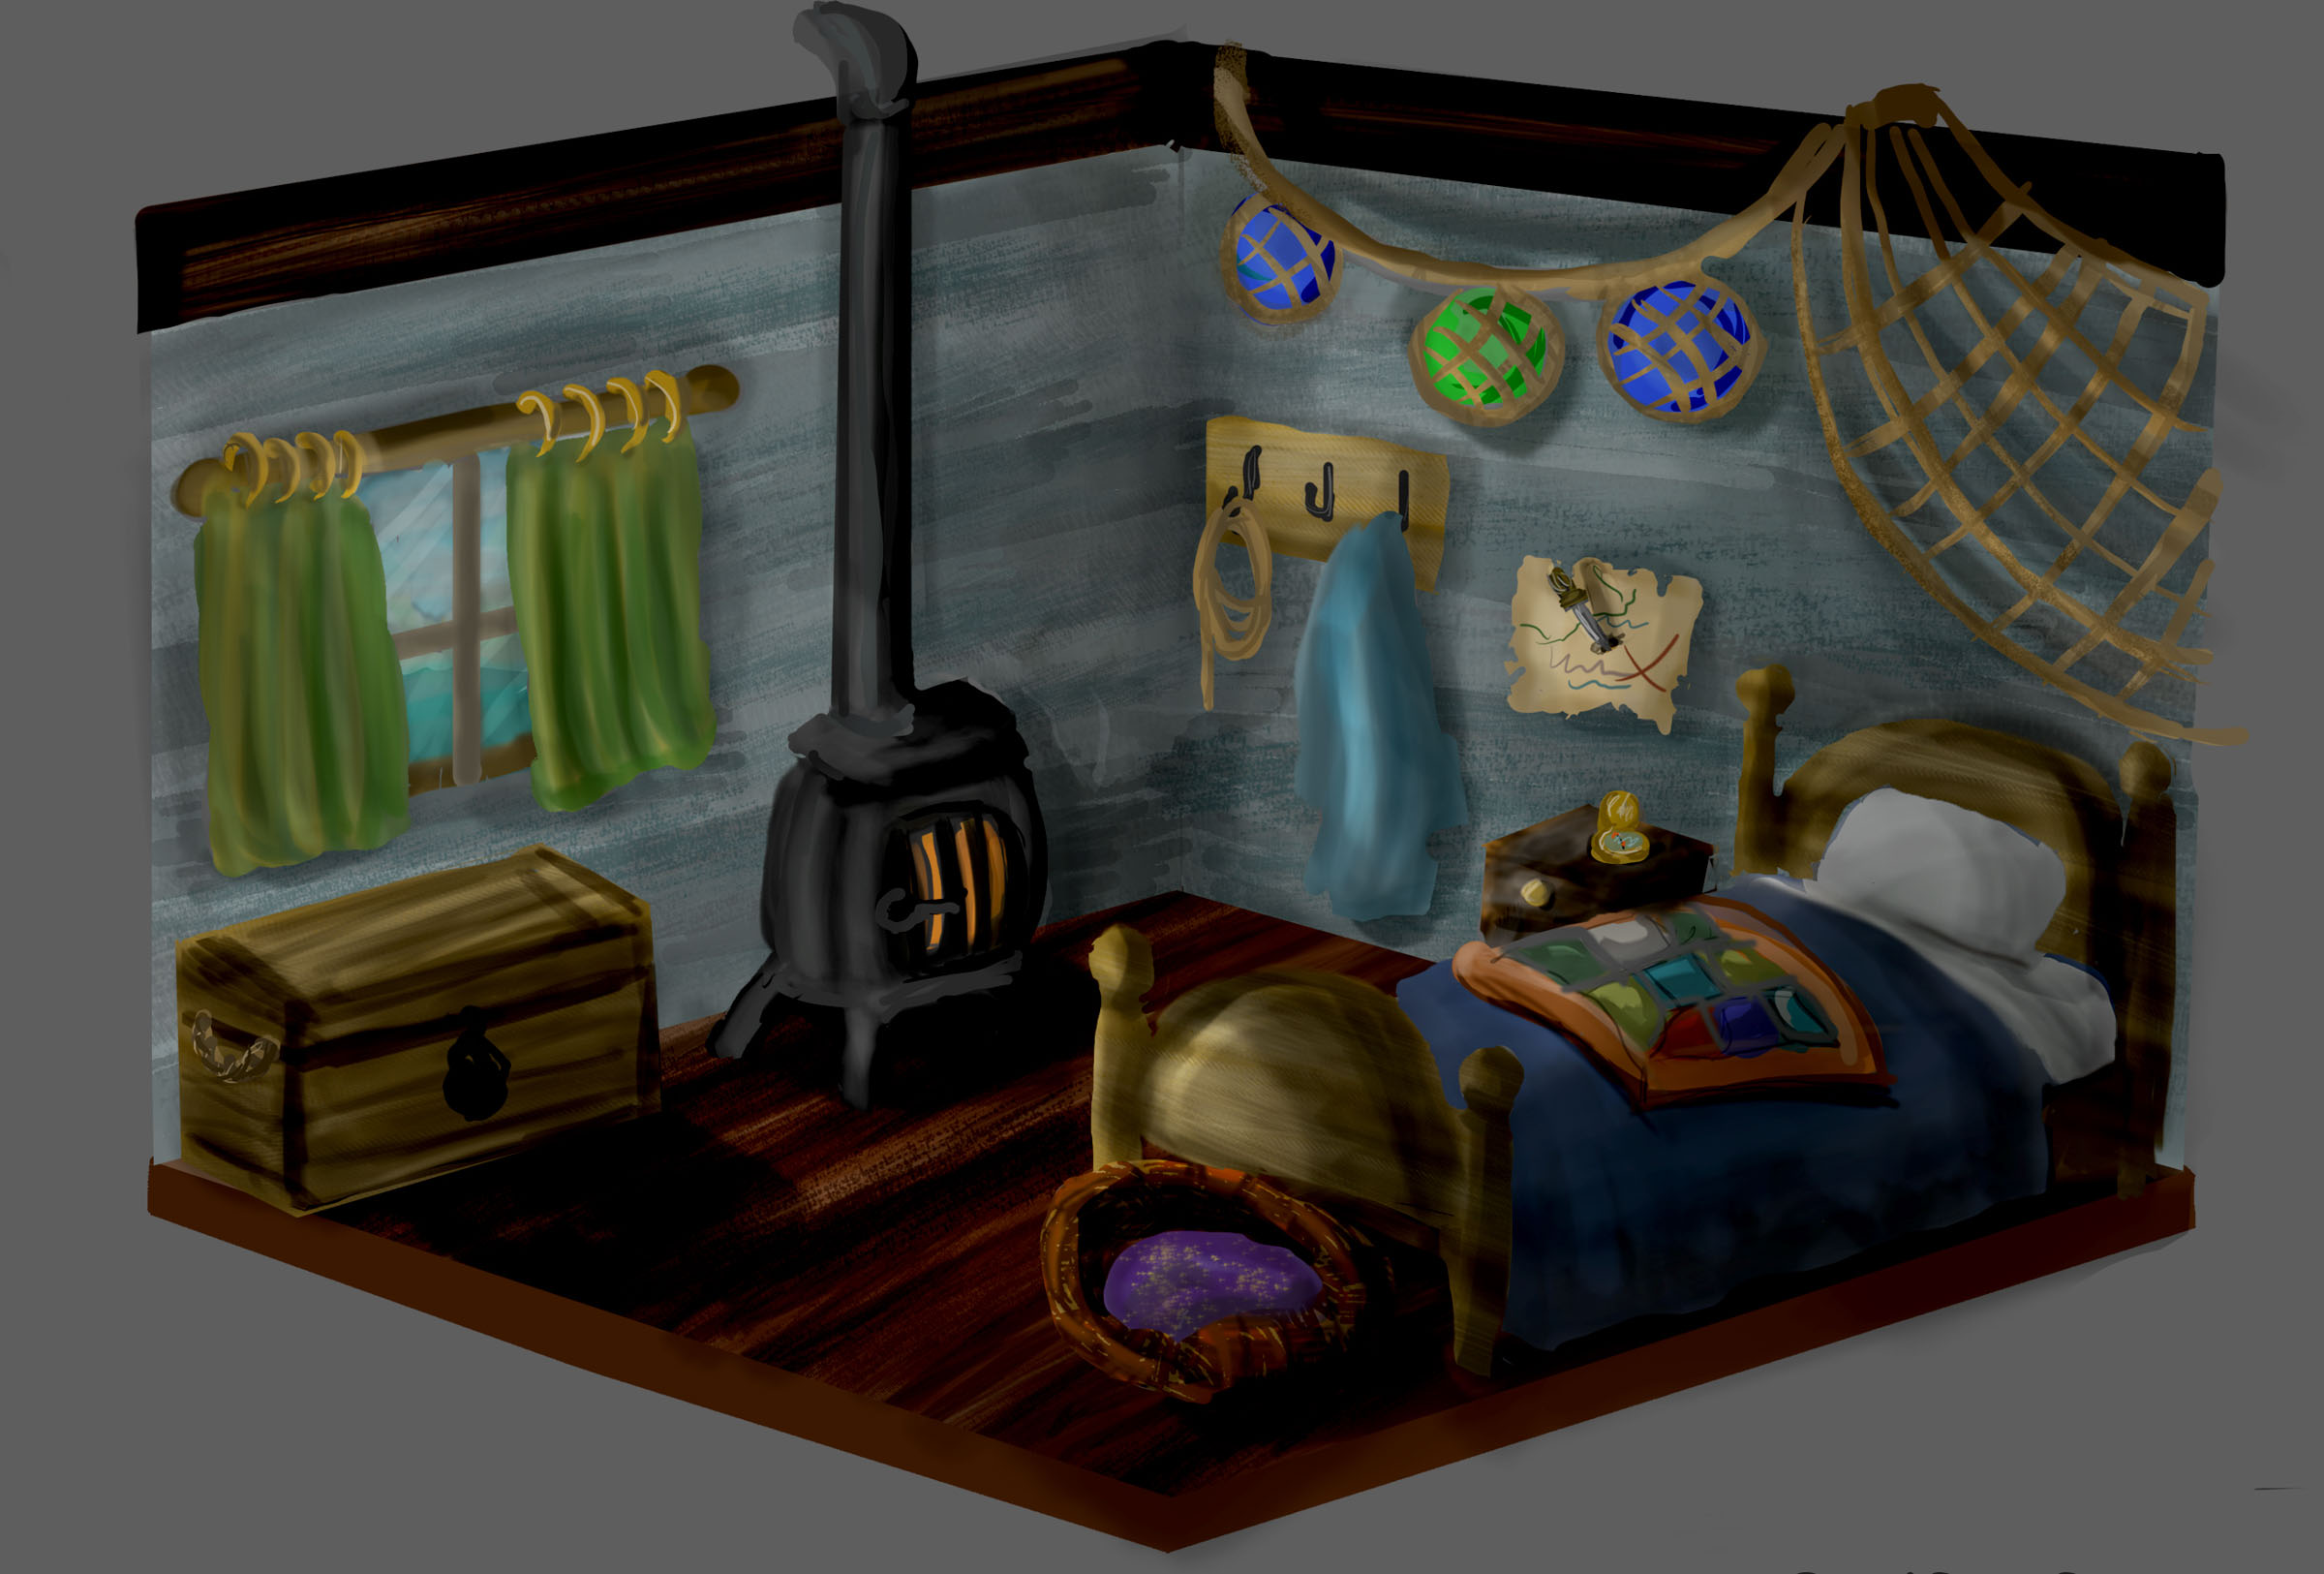 Character Bedroom Concept- A designed personal space concept given a character description and breakdown